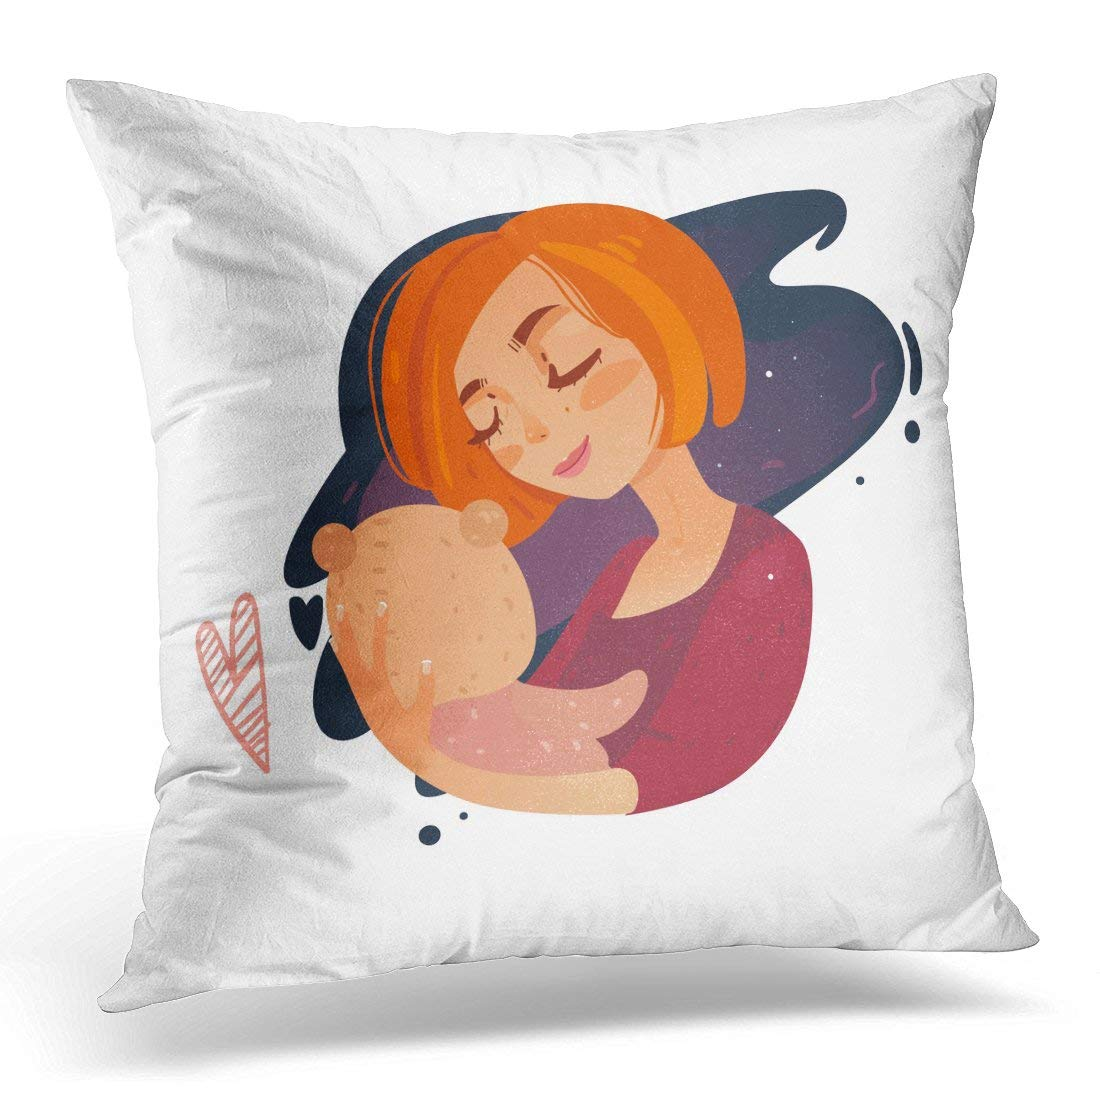 USART Blue Mom Sleep My Baby Red Kid Pillow Case Pillow Cover 18x18 inch